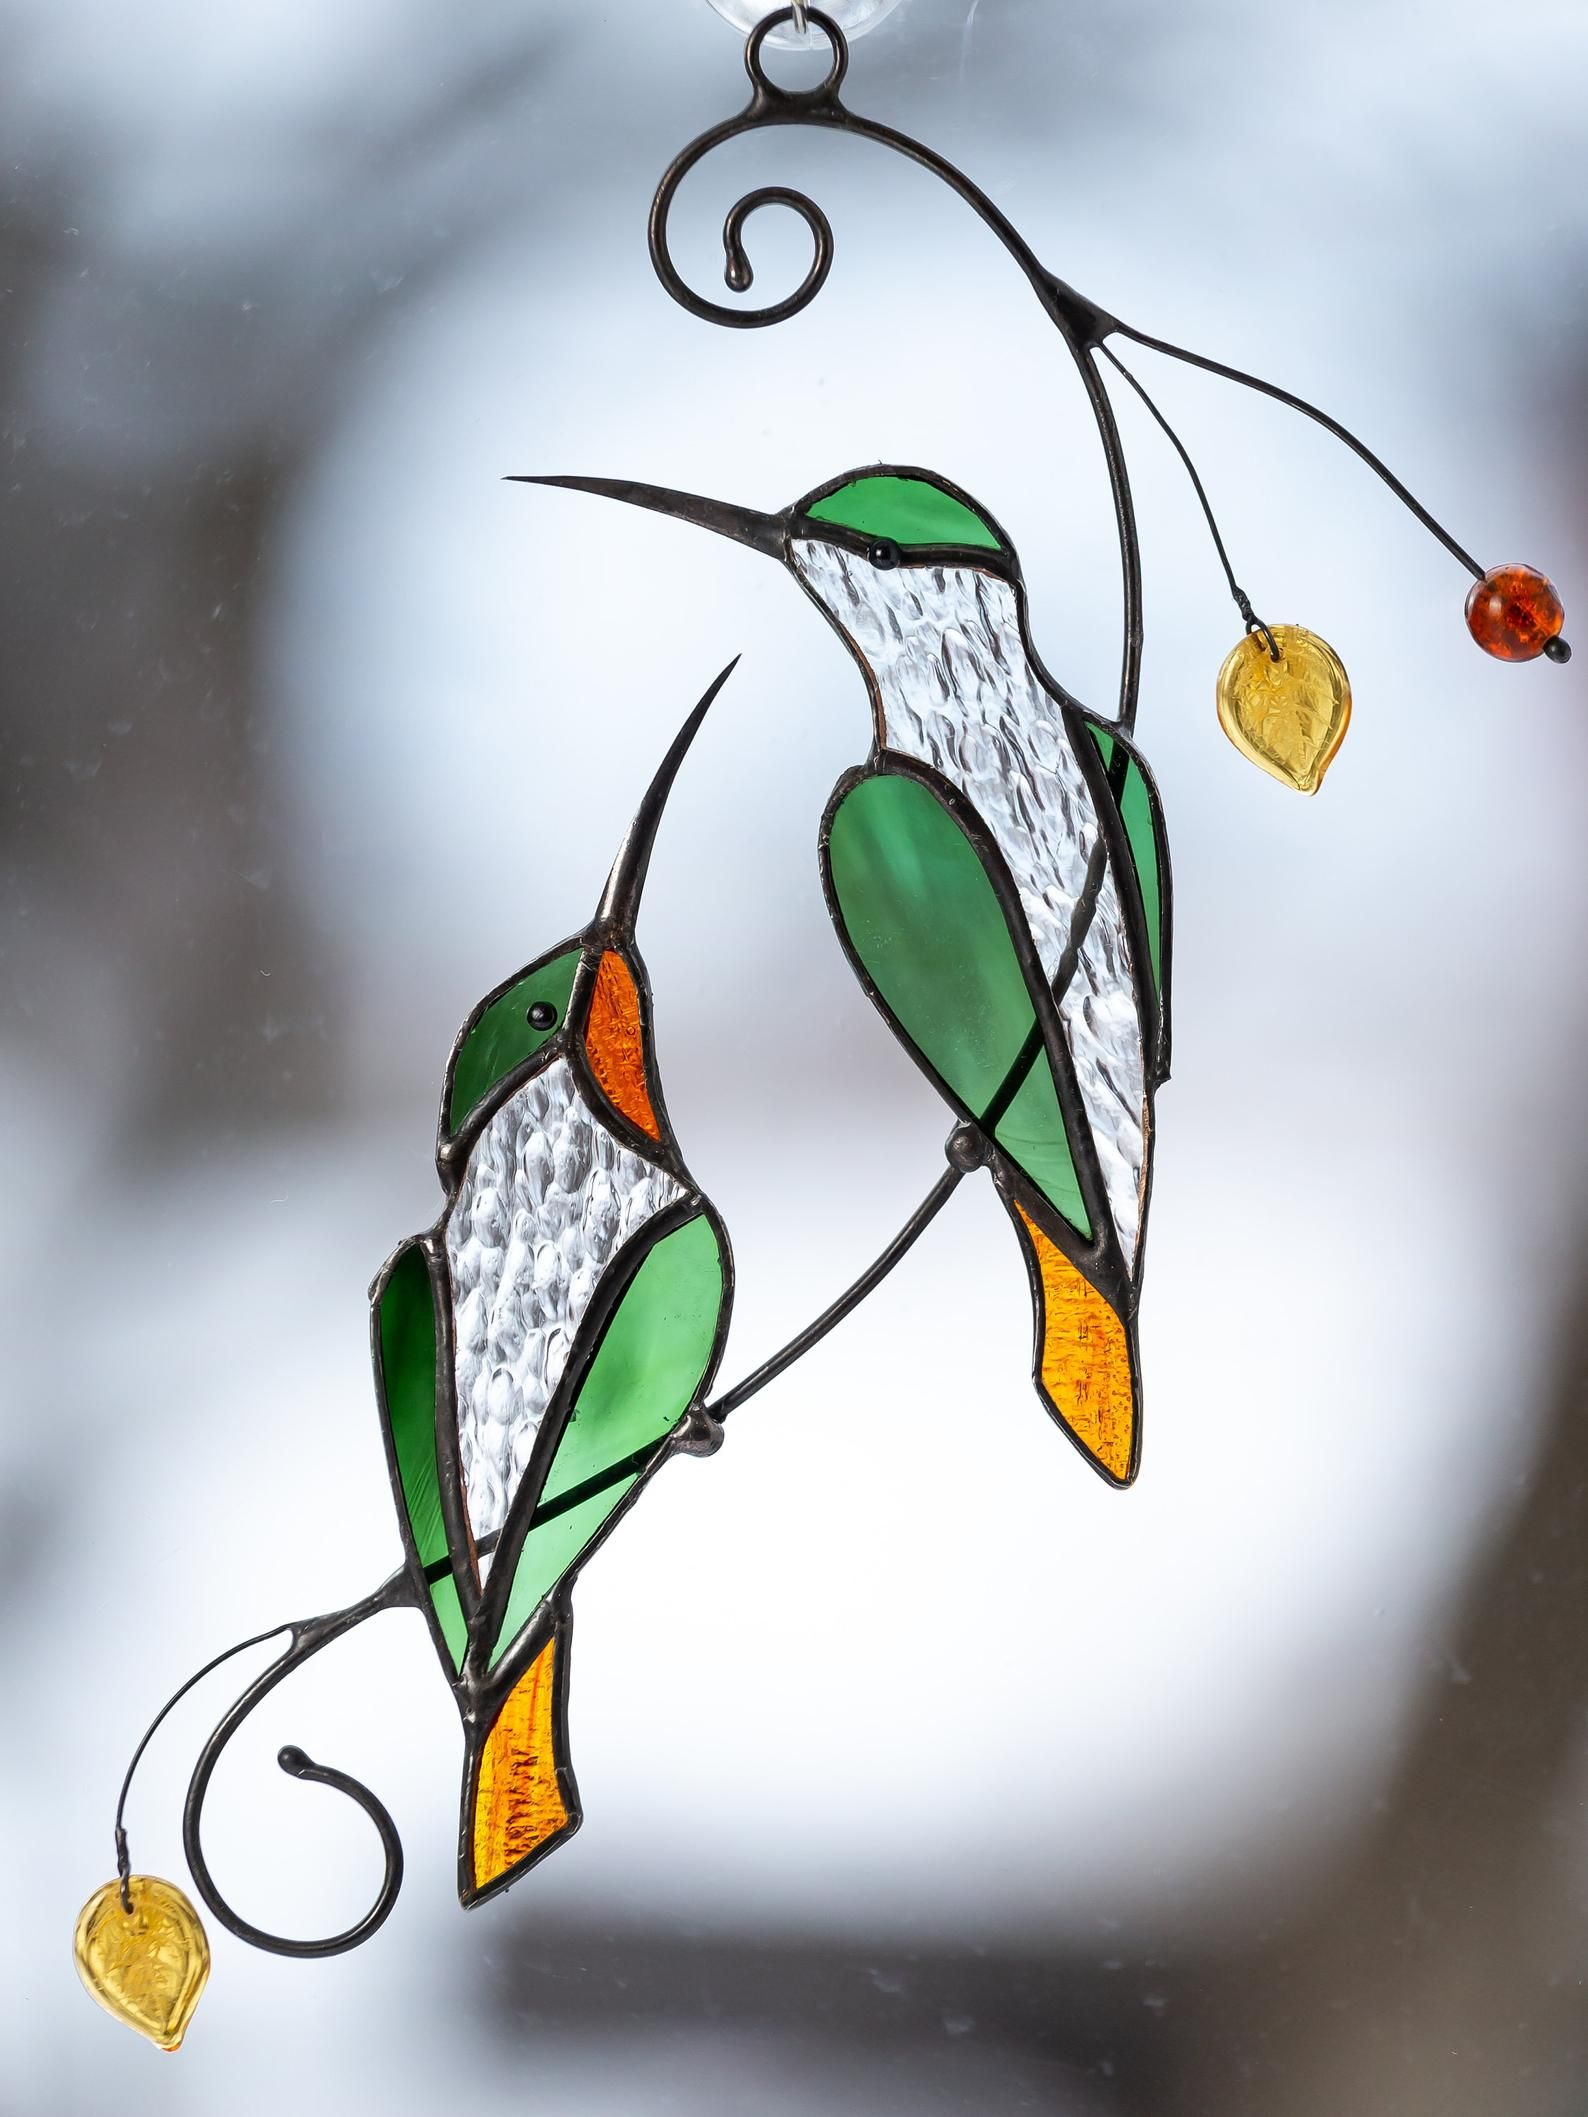 Hummingbird stained glass window hangings custom stained